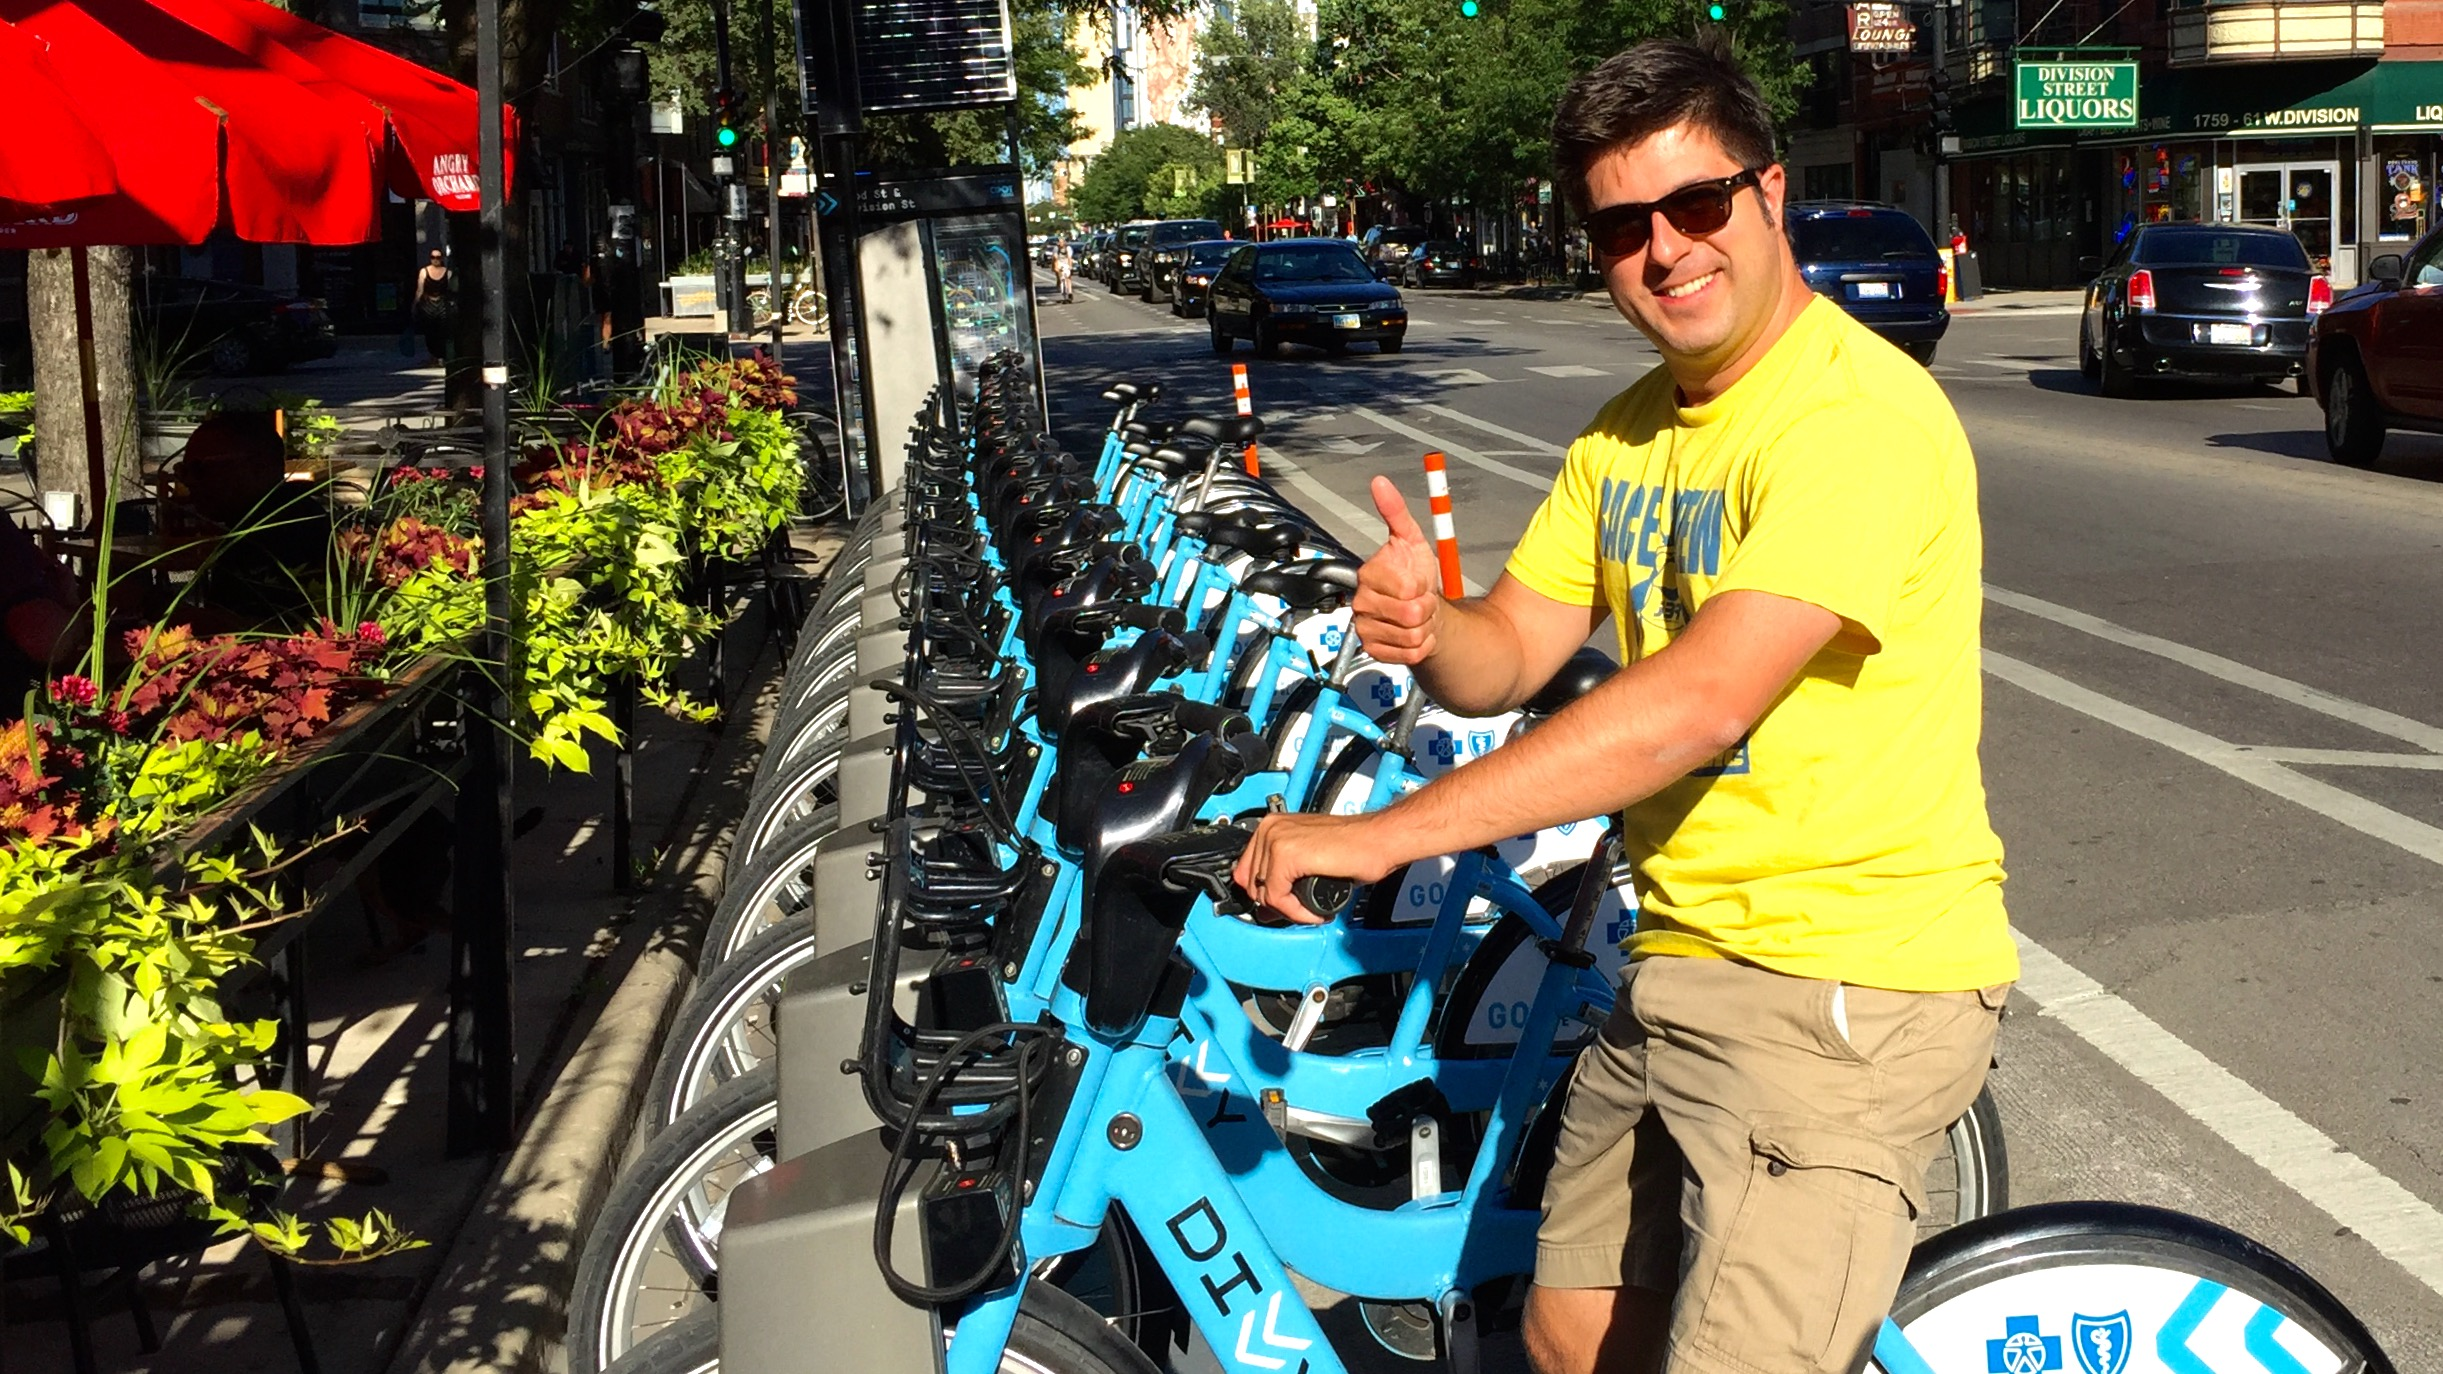 OTL host Mike Stephen is noticeably less excited after Divvy announced a rate increase for their bike sharing system.